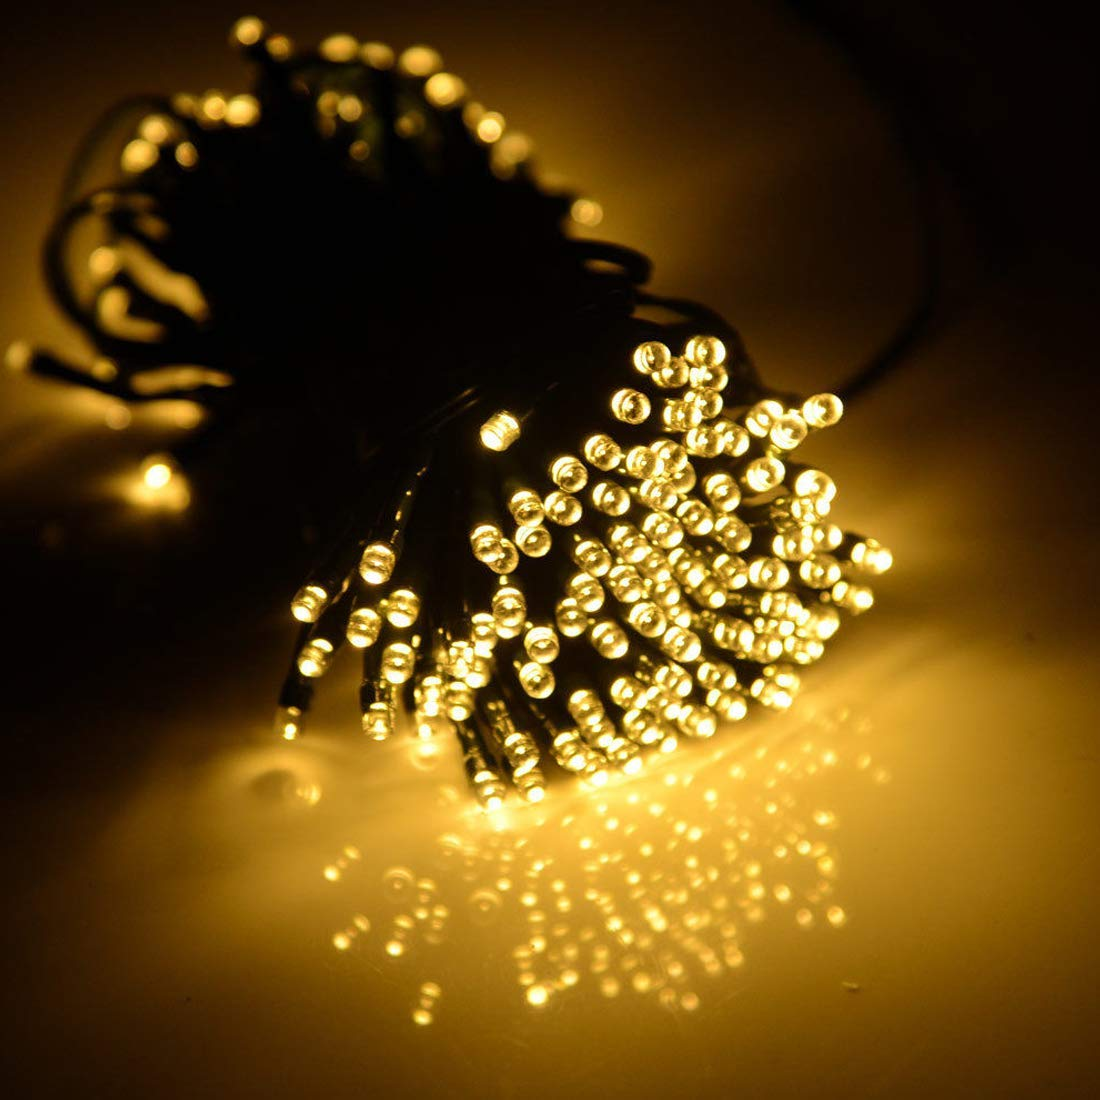 2 Pack Solar String Lights 33ft 100 Led Solar and Battery Powered Outdoor String Lights Waterproof Fairy Lights with 8 Modes Copper Wire Lights for Xmas Tree Garden Homes Ambiance Wedding Lawn Party